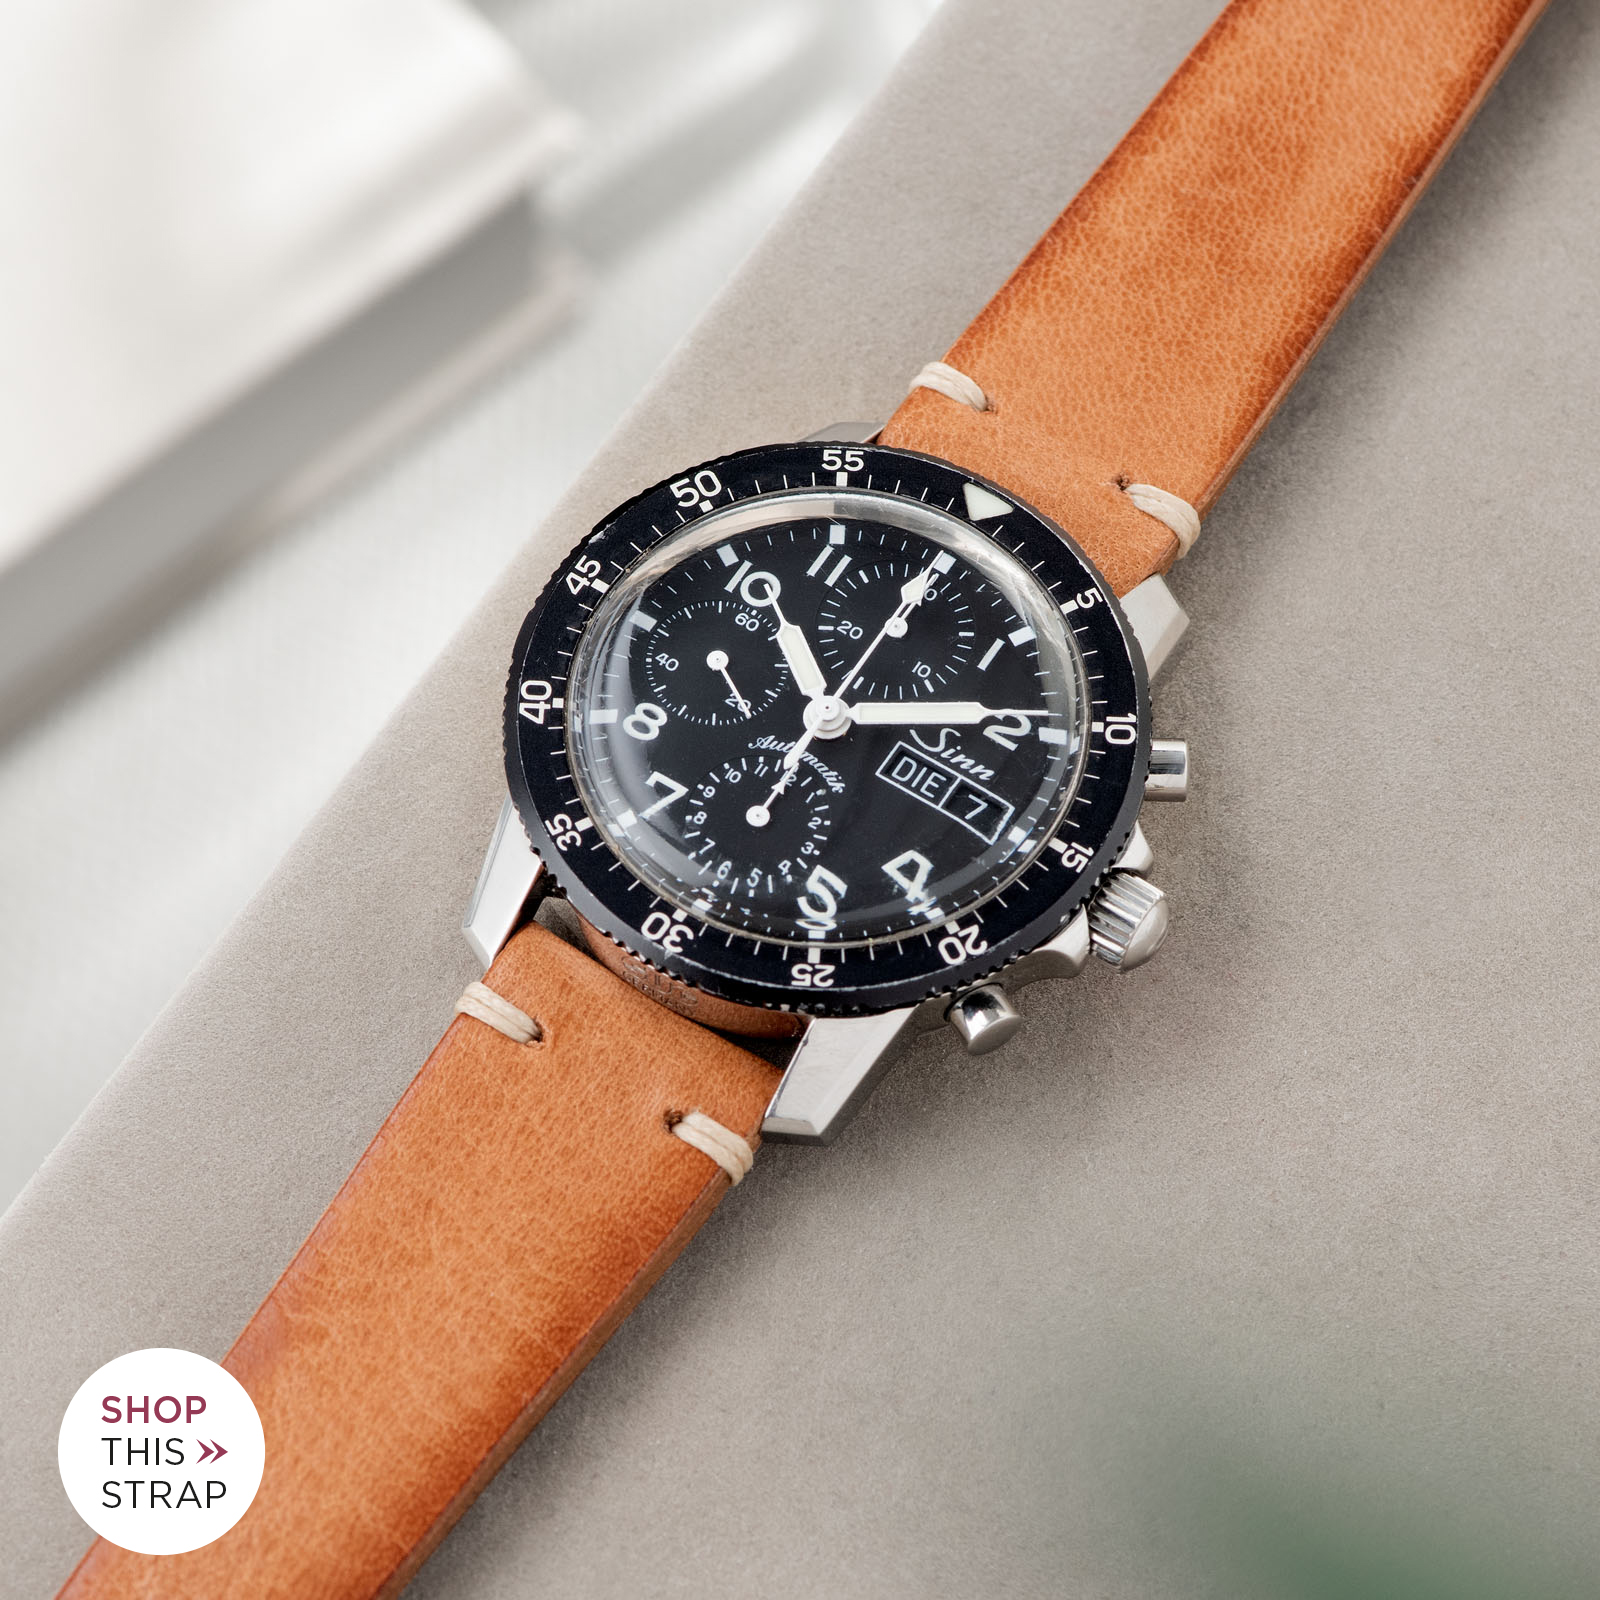 Bulang and Sons_Strap Guide_Sinn 103_Caramel Brown Leather Watch Strap